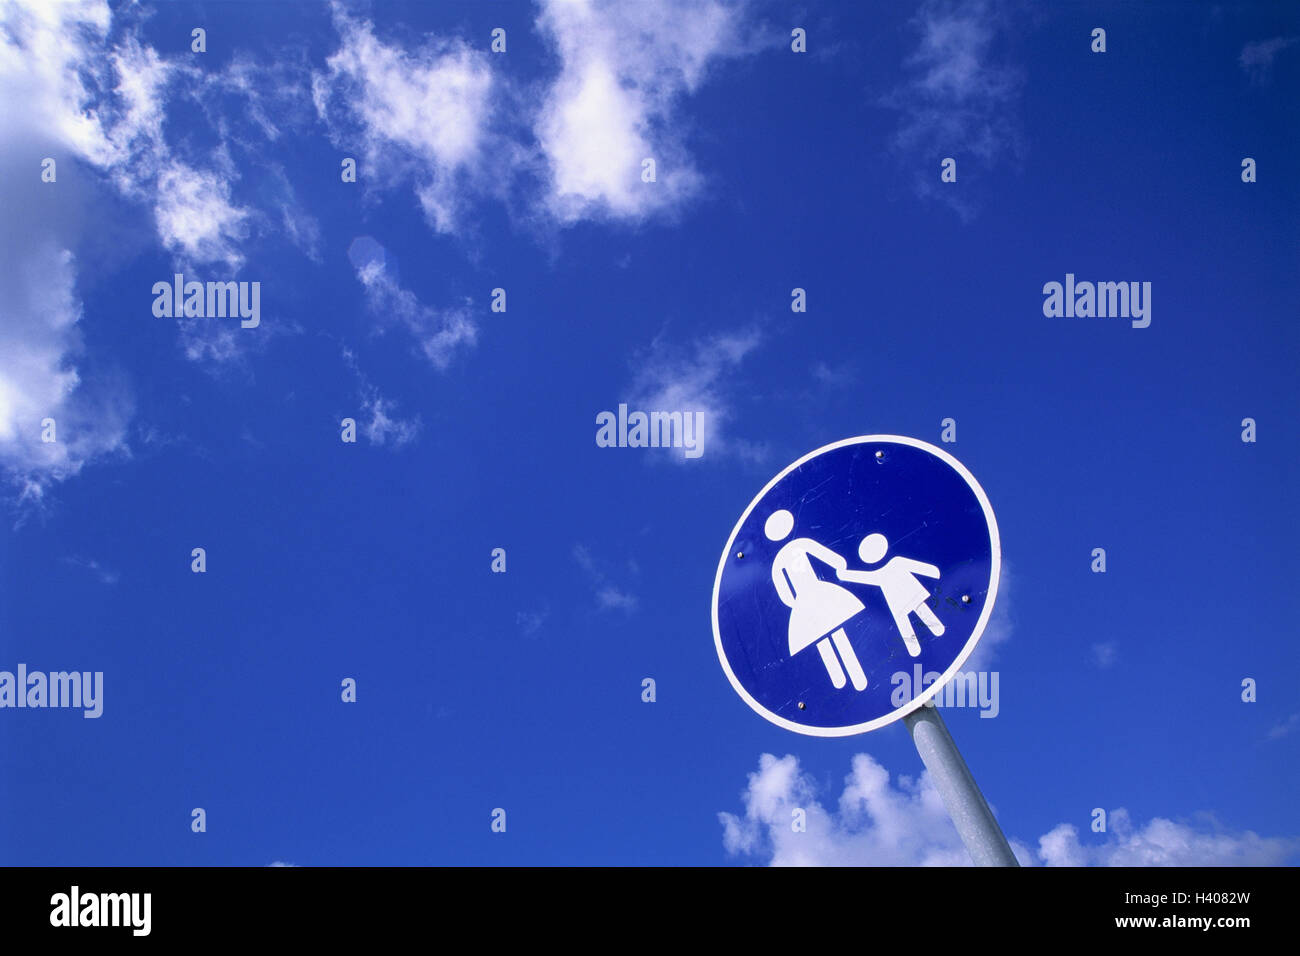 Road sign, walkway, sign, sign, Commandment child, traffic sign, special way, footpath, pedestrian, cloudy sky - Stock Image